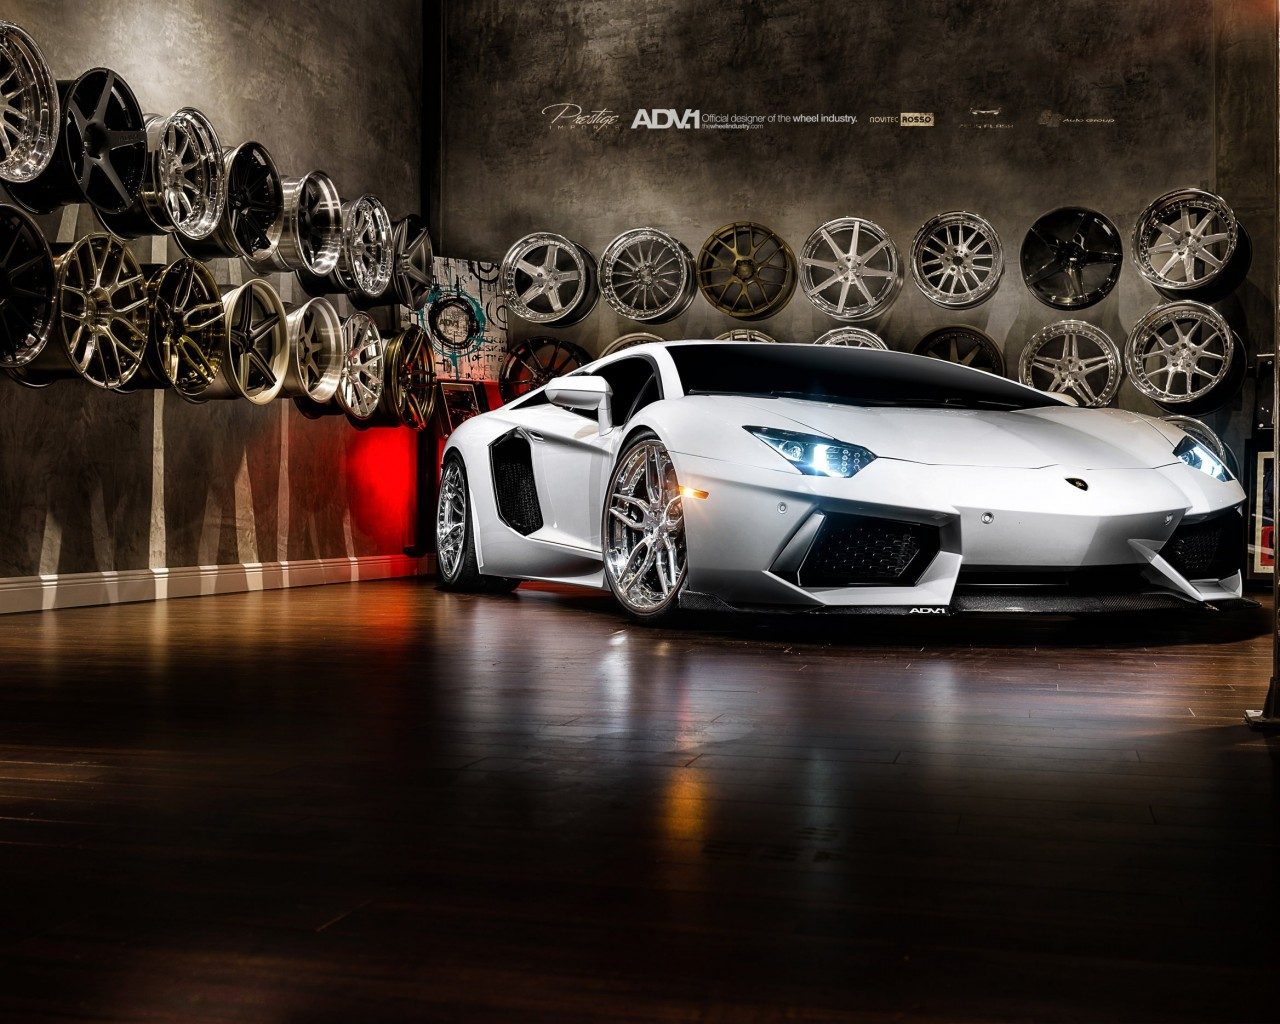 Lamborghini Aventador On ADV.1 Wheels Wallpaper for Desktop 1280x1024